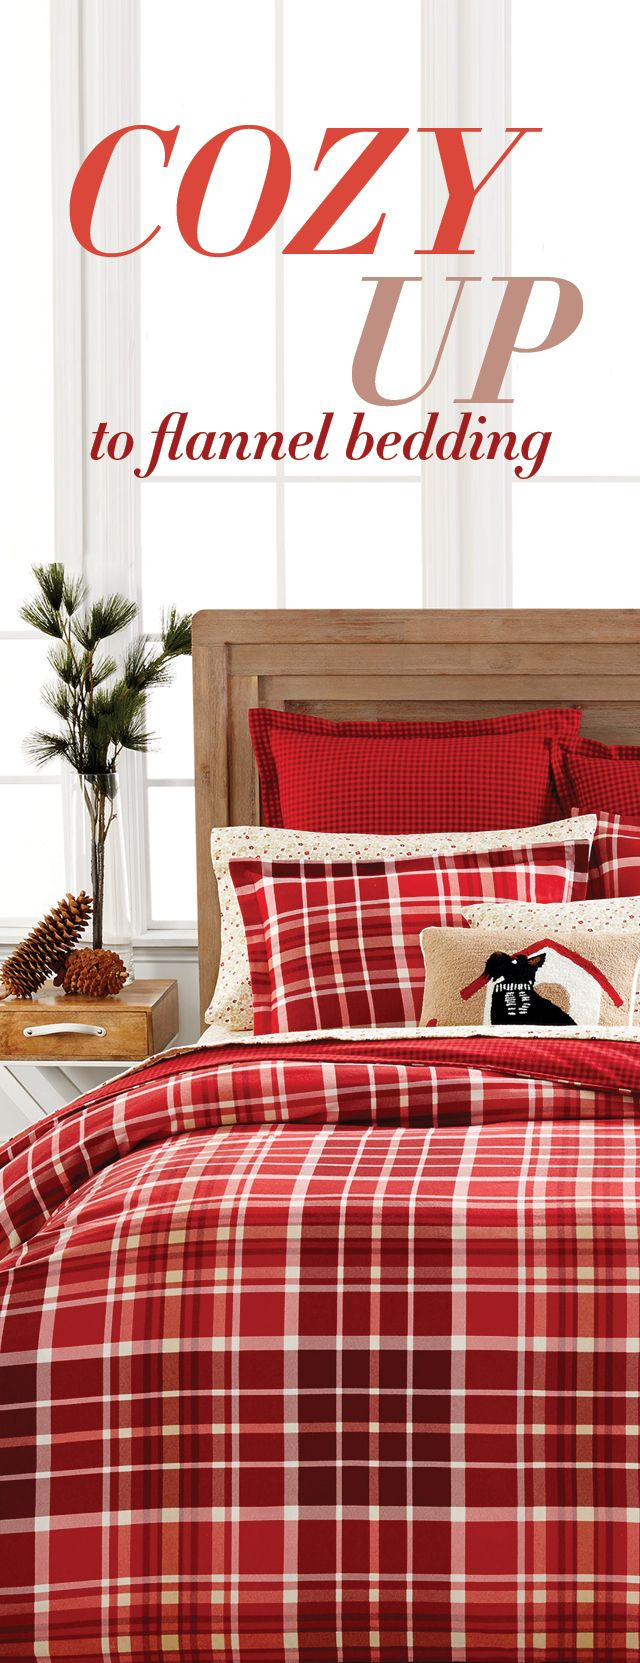 Get your home in the holiday mood with comfy flannel bedding from the Martha Stewart Collection — whether you choose festive tartan patterns or elegant floral prints, they're the perfect way to warm up to the season ahead!